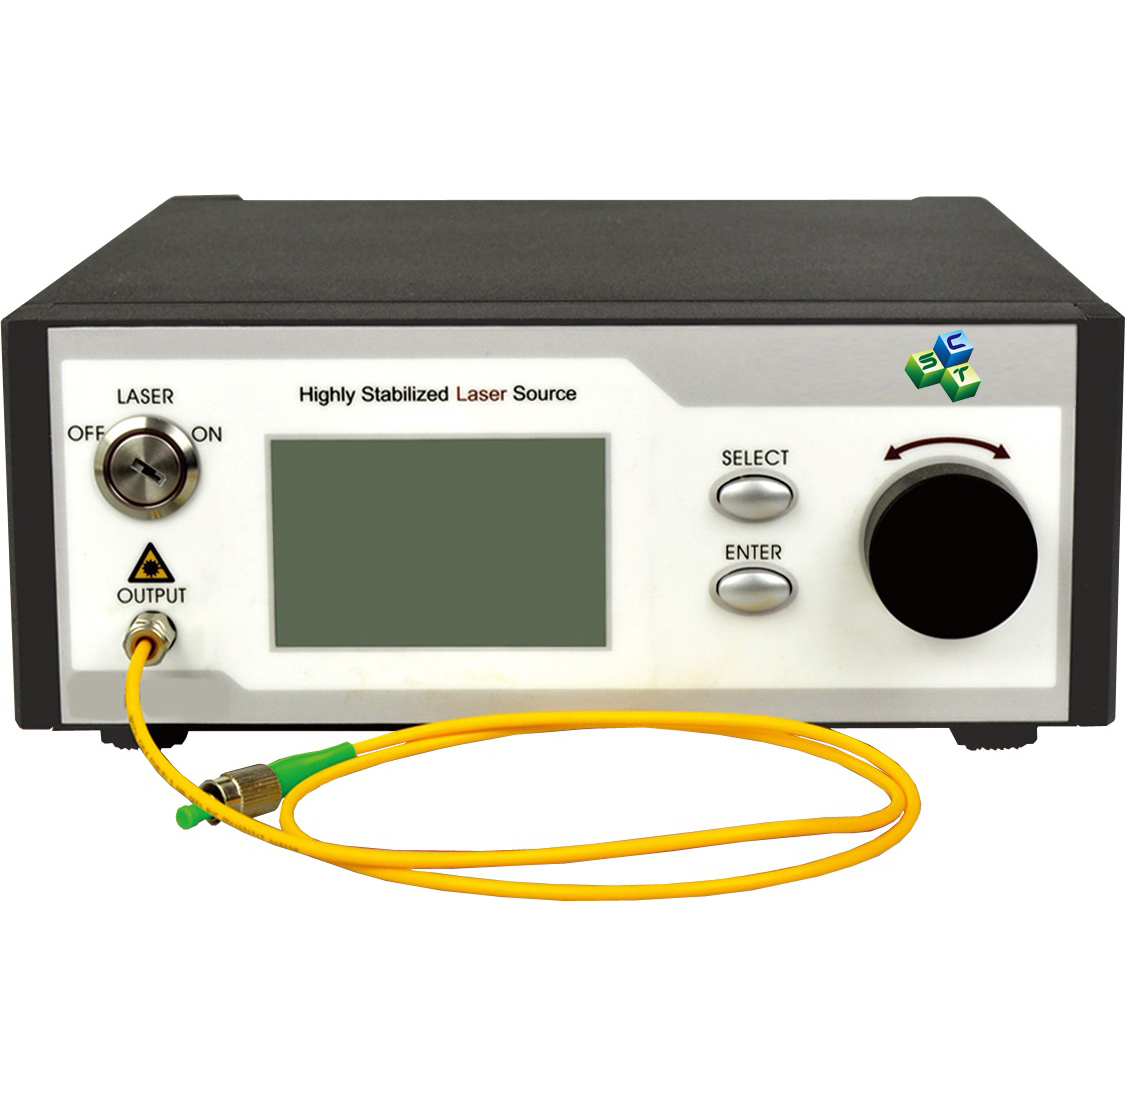 1550nm high stable DFB semi-conductor laser source ---STC-OLS-1550 DFB Semi-Conductor